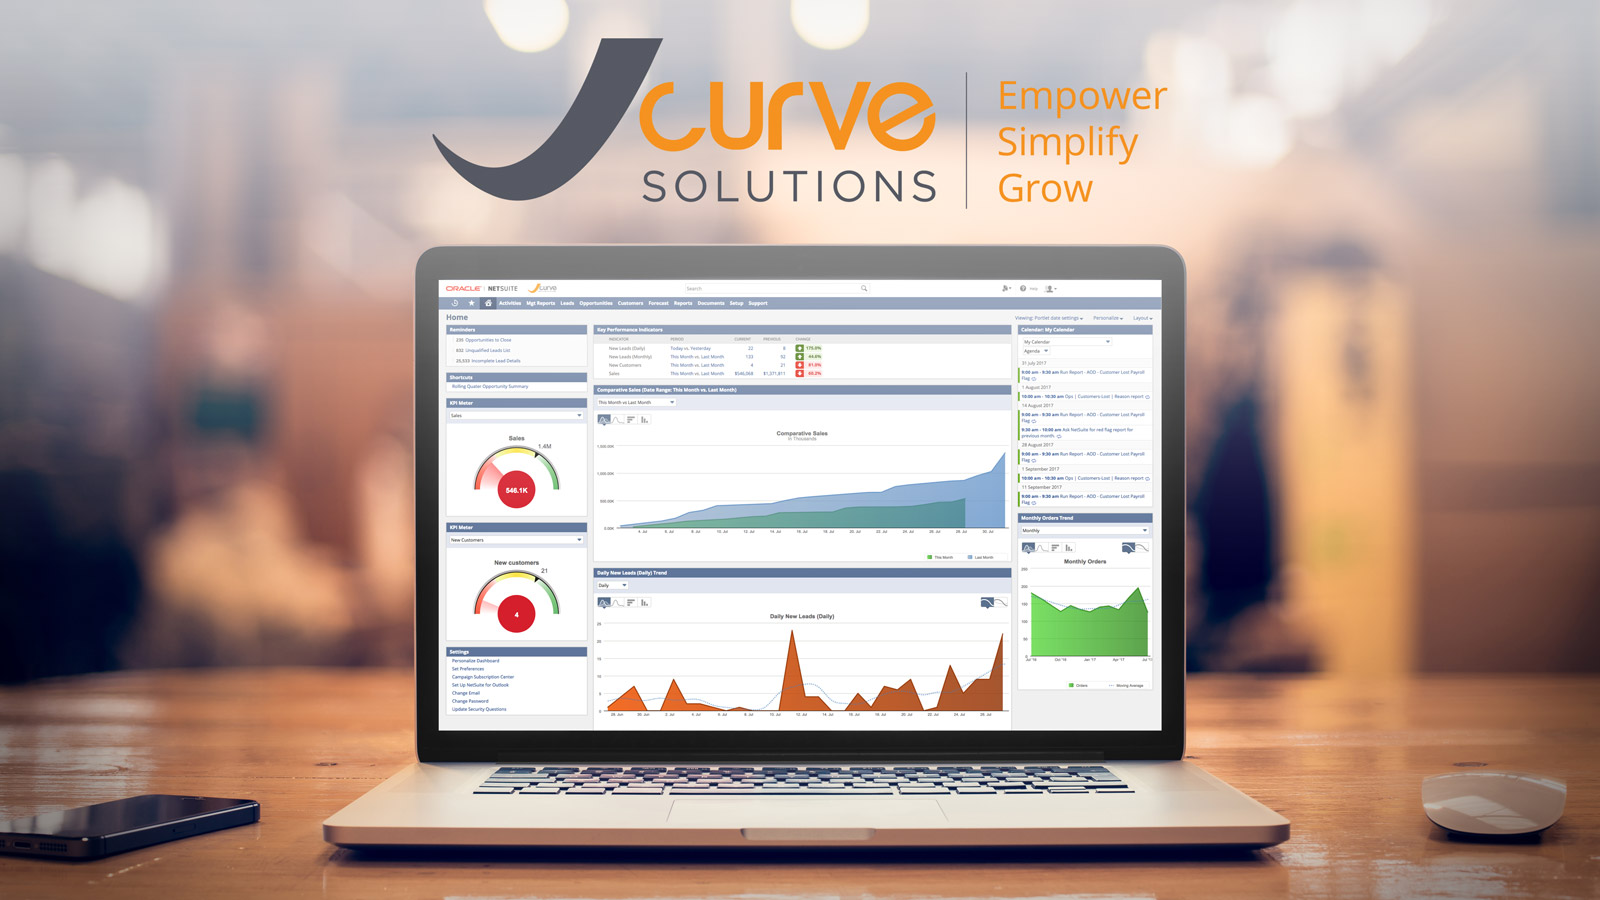 Shippit Has Partnered with JCurve Solutions to Help You Grow Smarter